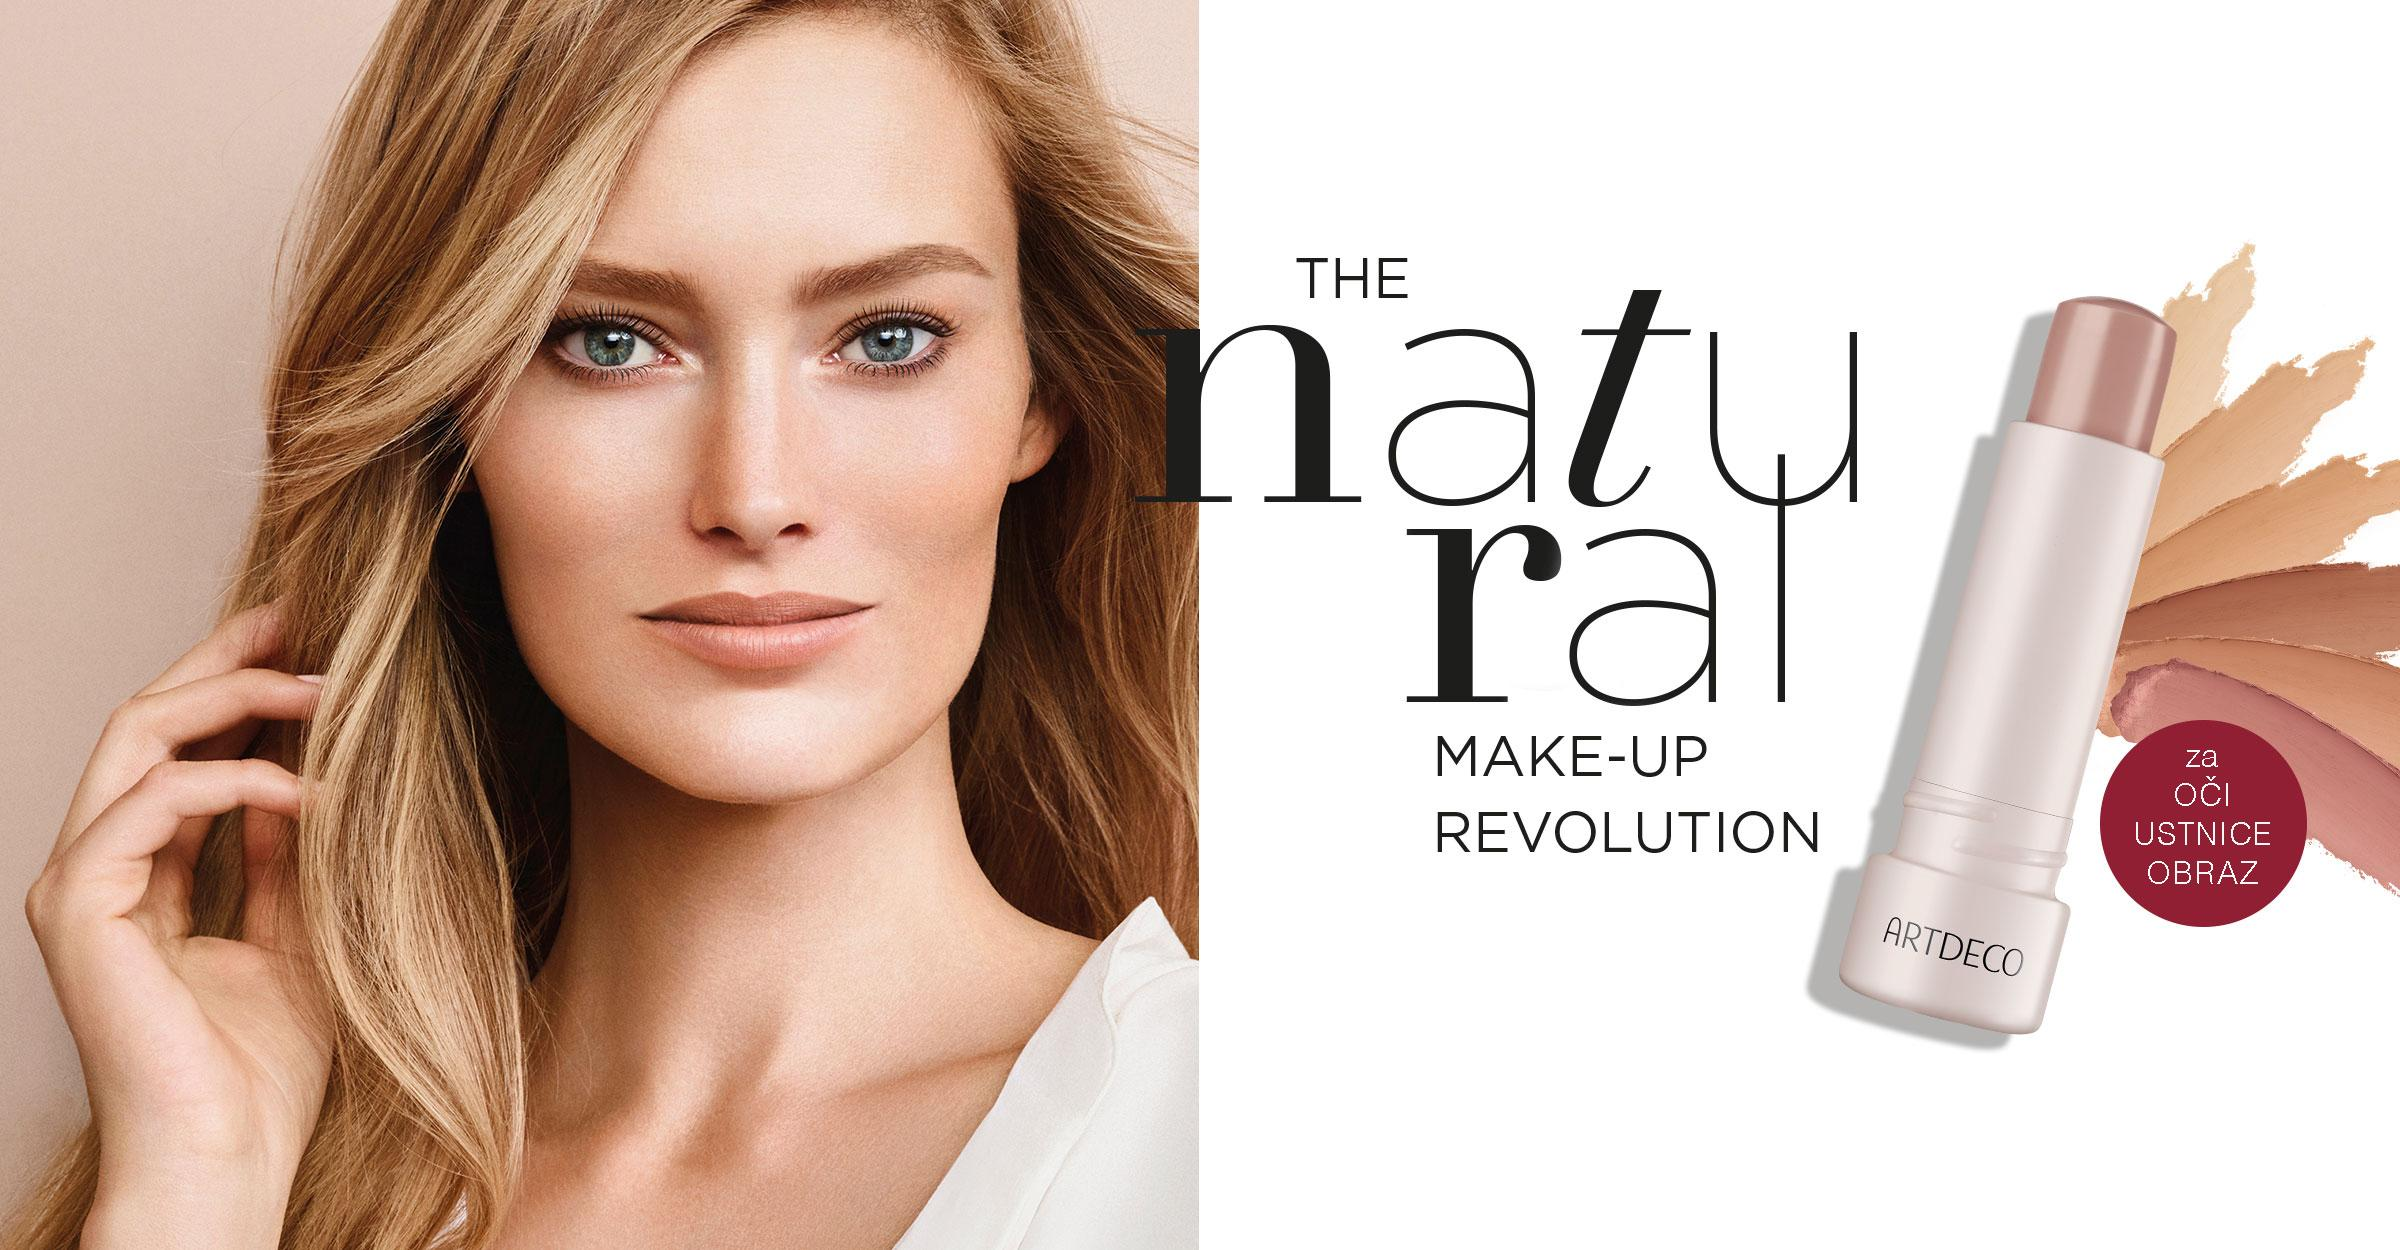 The Natural Make-up Revolution